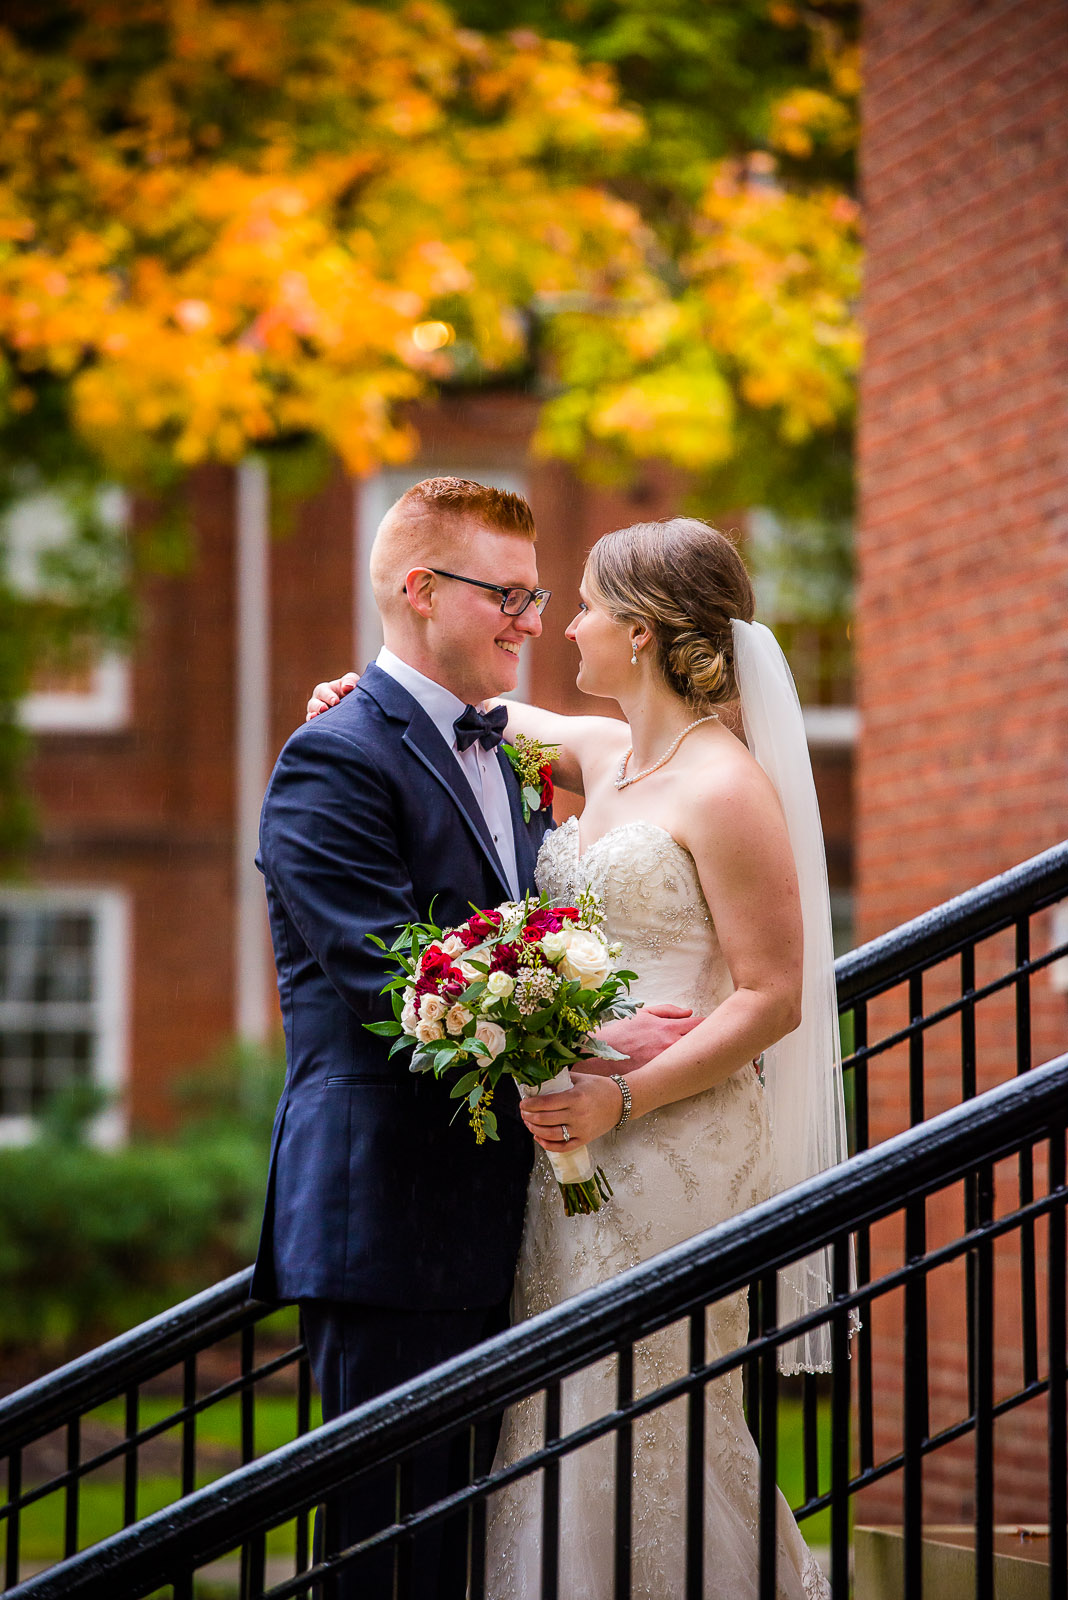 Eric_and_Christy_Photography_Blog_Wedding_Erica_Mike-54